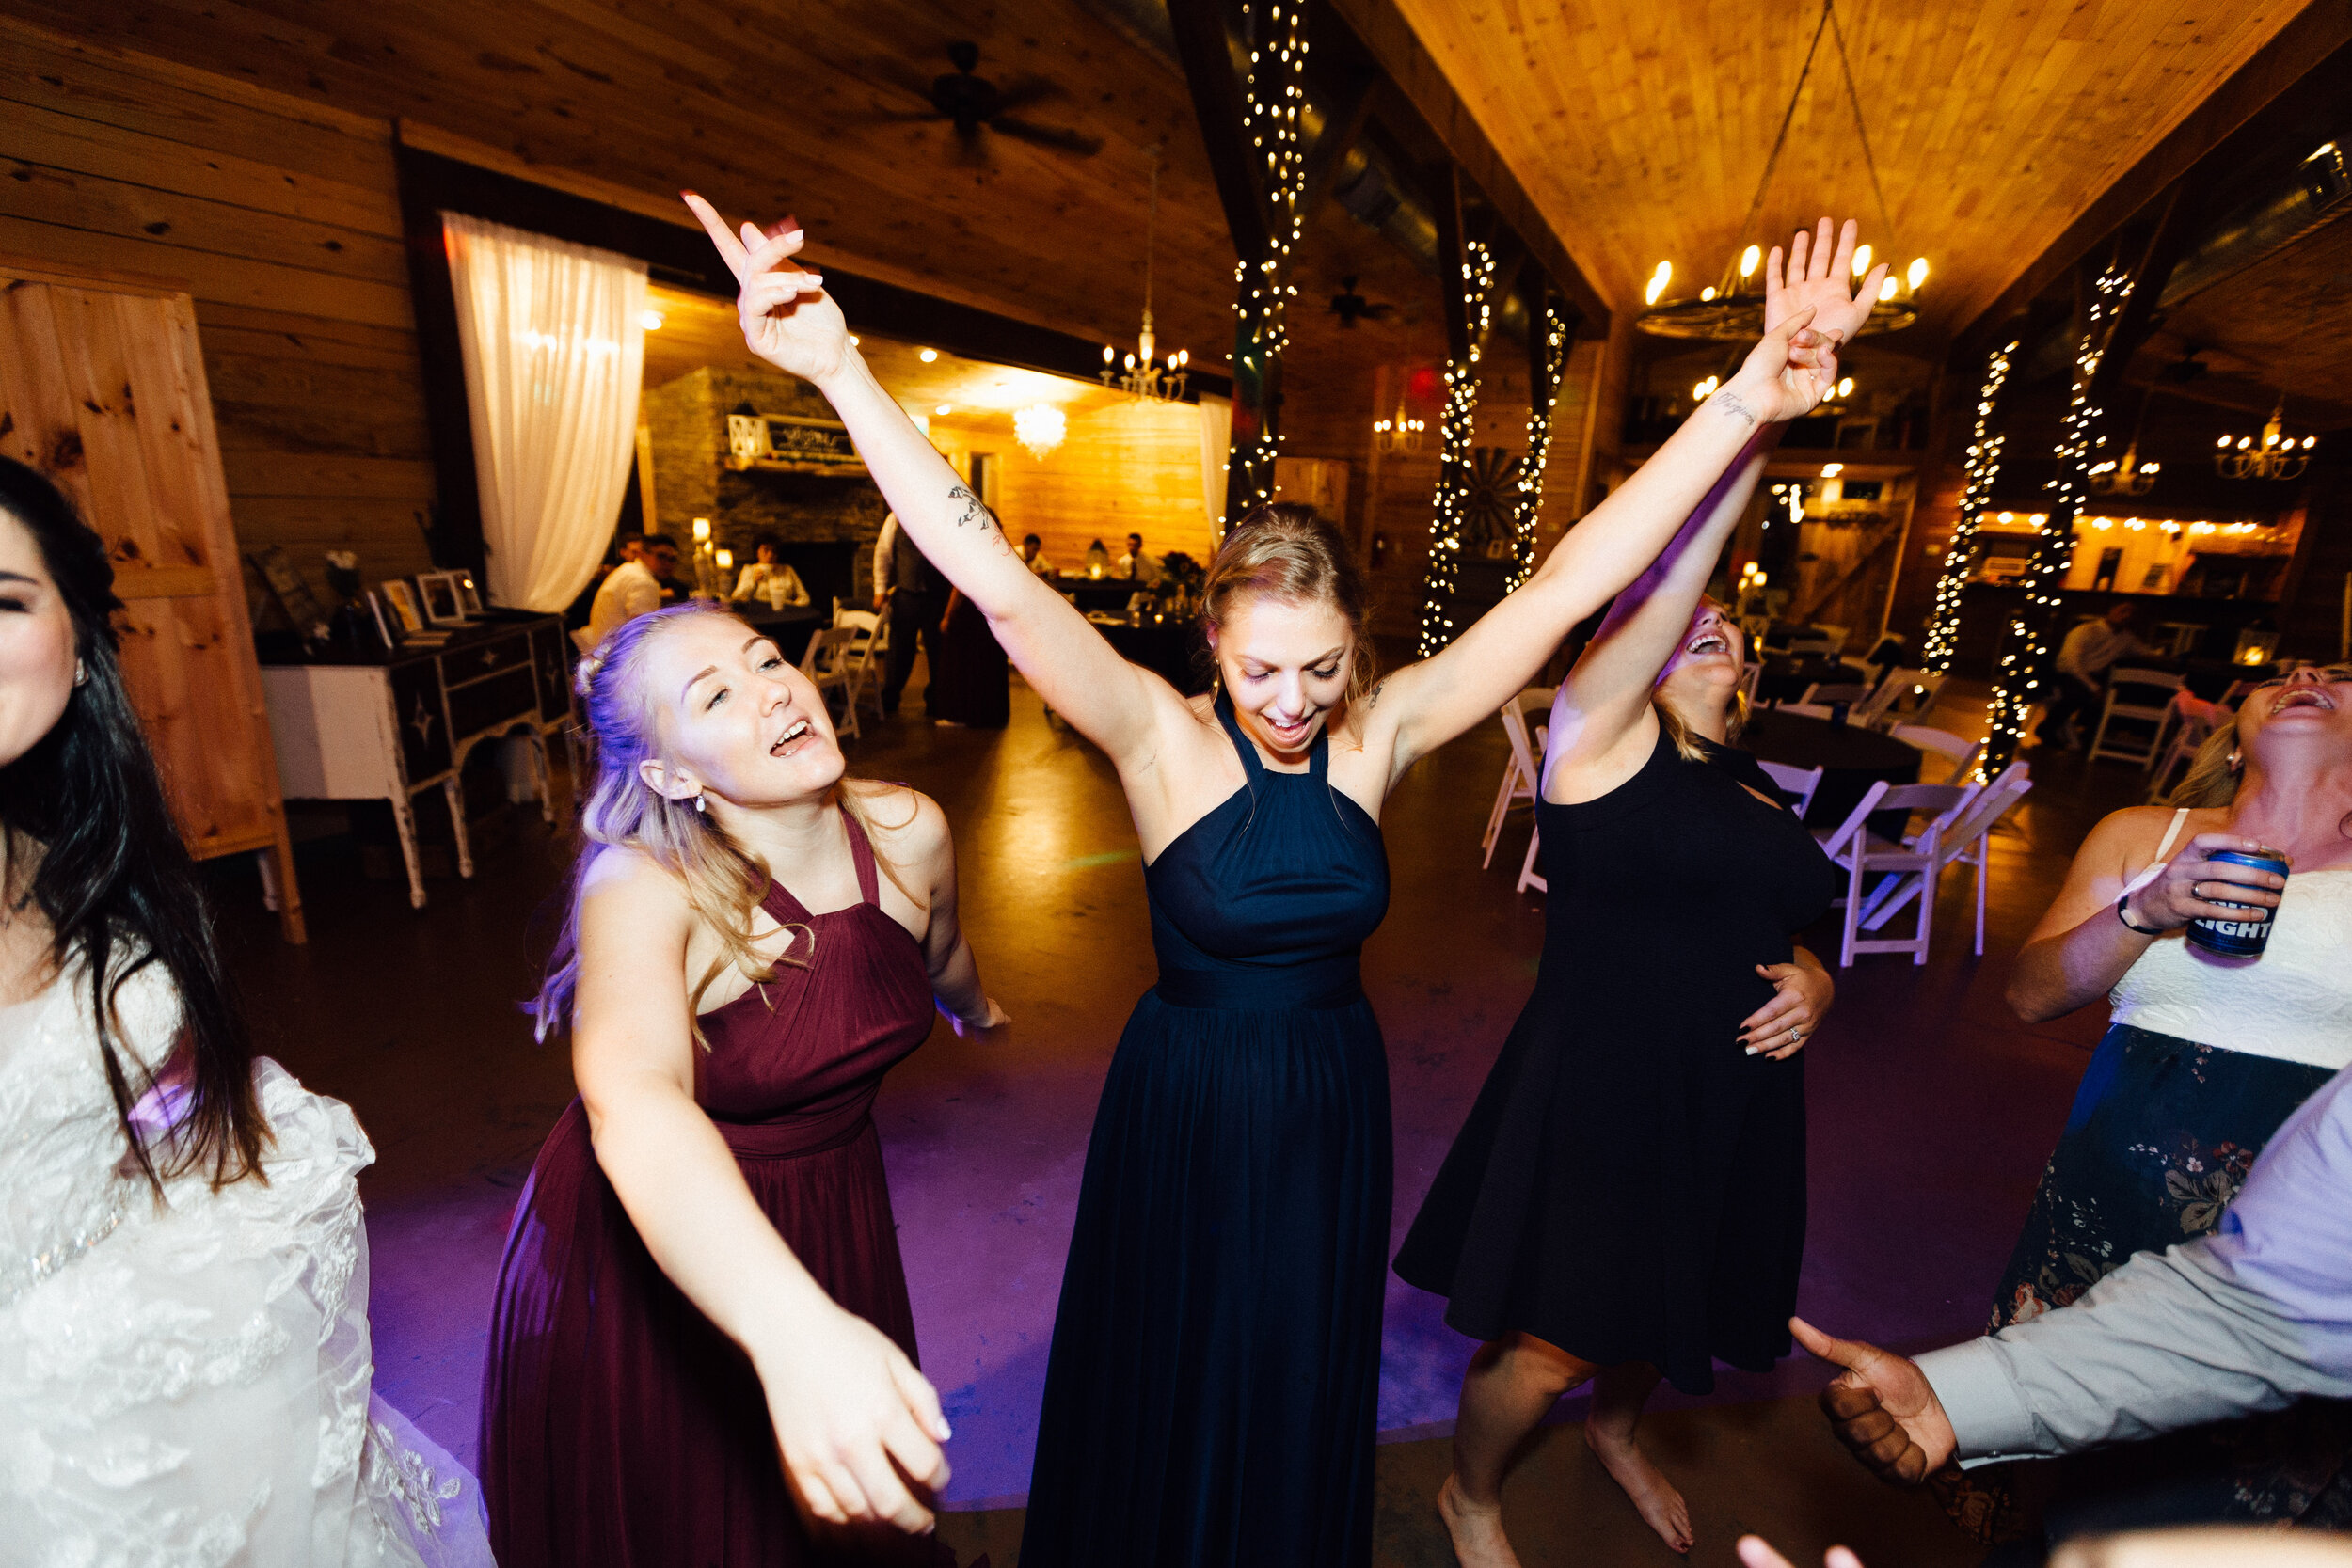 atlanta_wedding_photographers_georgia_same_sex_rustic_barn_farm_lesbian_weddings_inclusive_3303.jpg